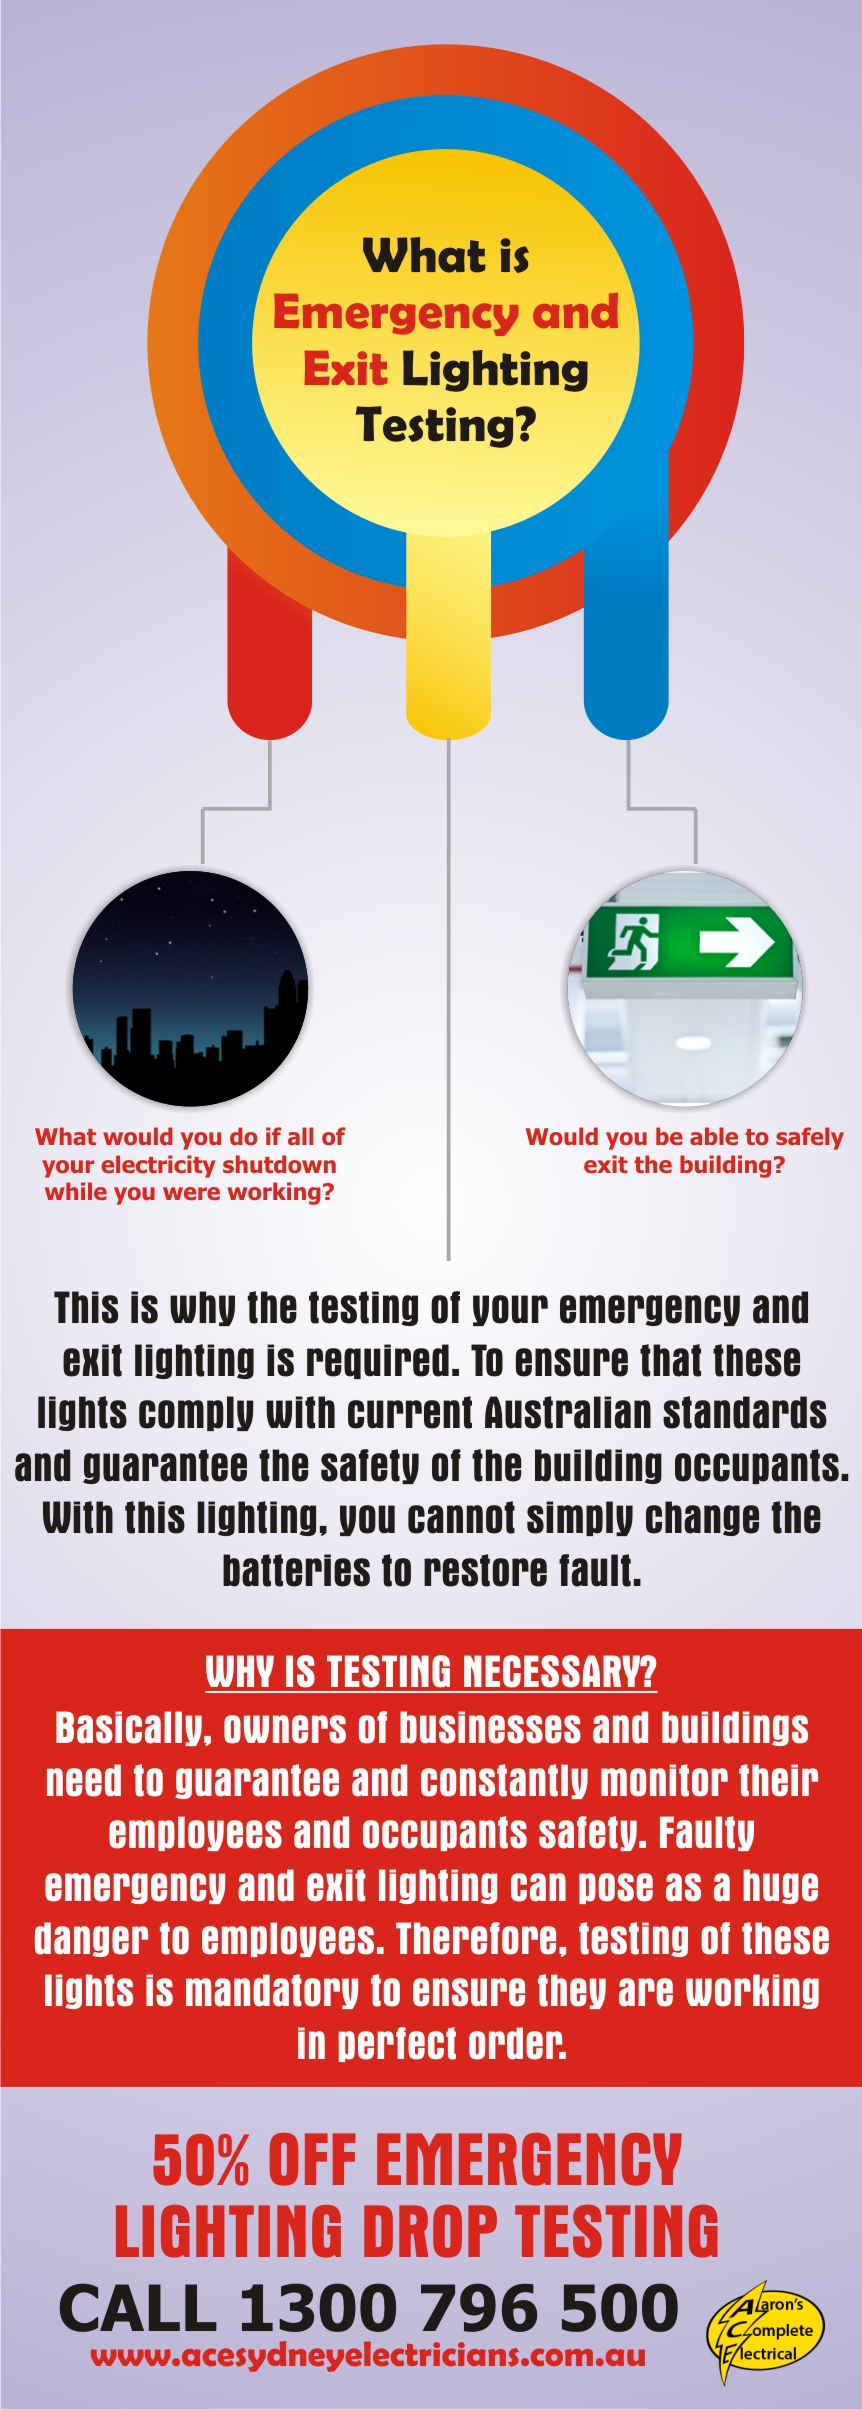 What Is Emergency and Exit Light Testing?